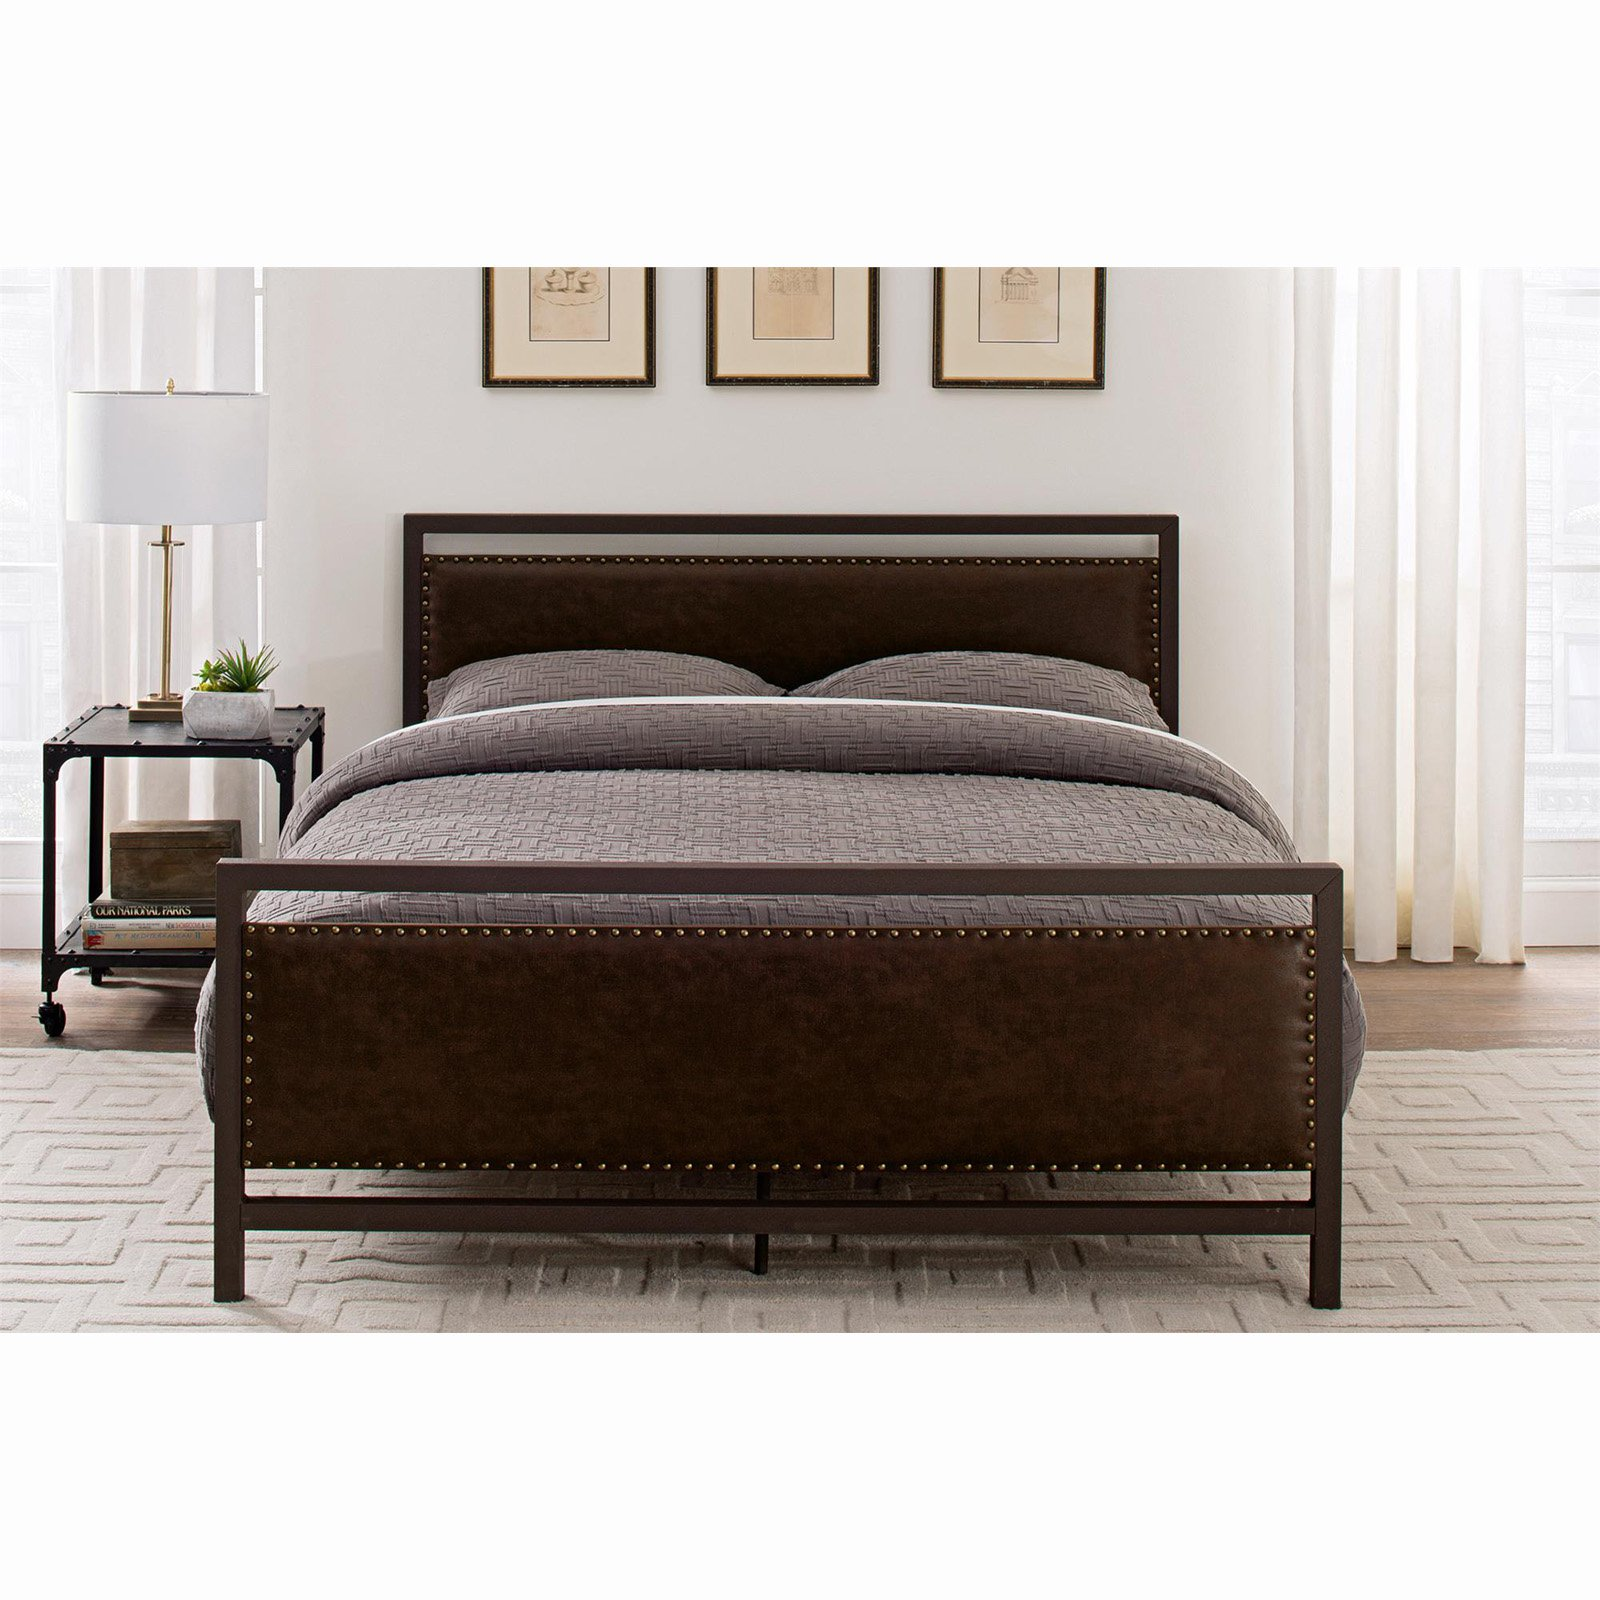 Vintage Metal And Upholstered Queen Size Bed - Queen - Brown - Dorel Home Products